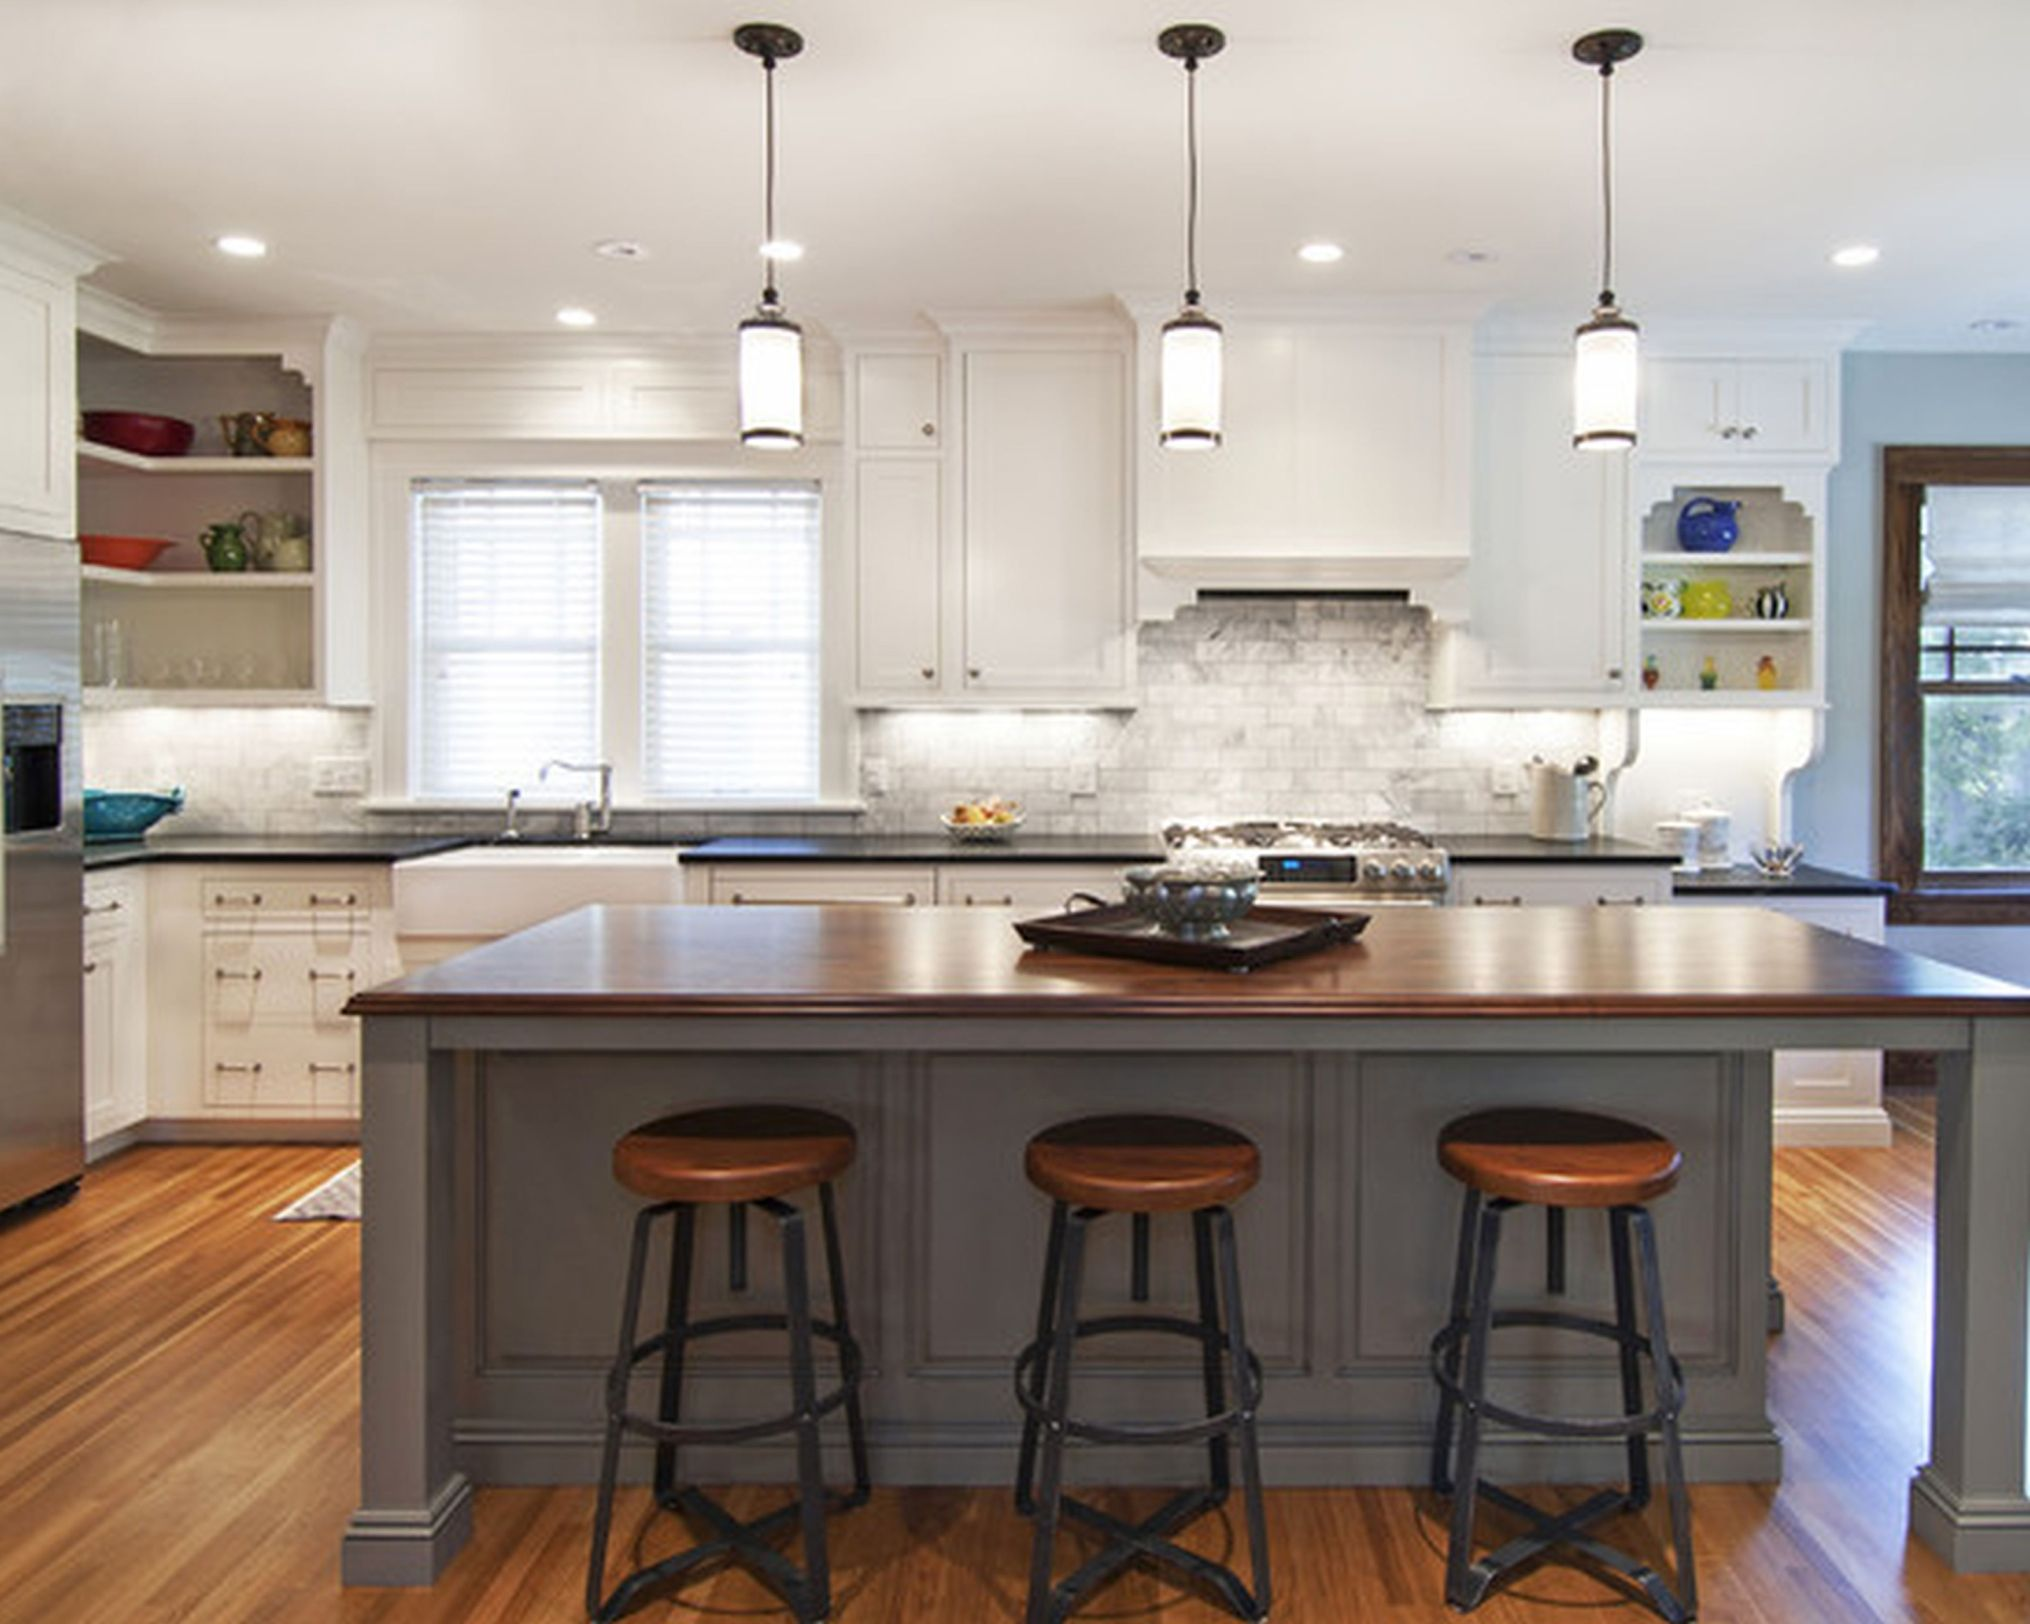 Kitchen Island With Sink And Bar white-kitchen-cabinets-bay-window-pendant-lights-over-kitchen